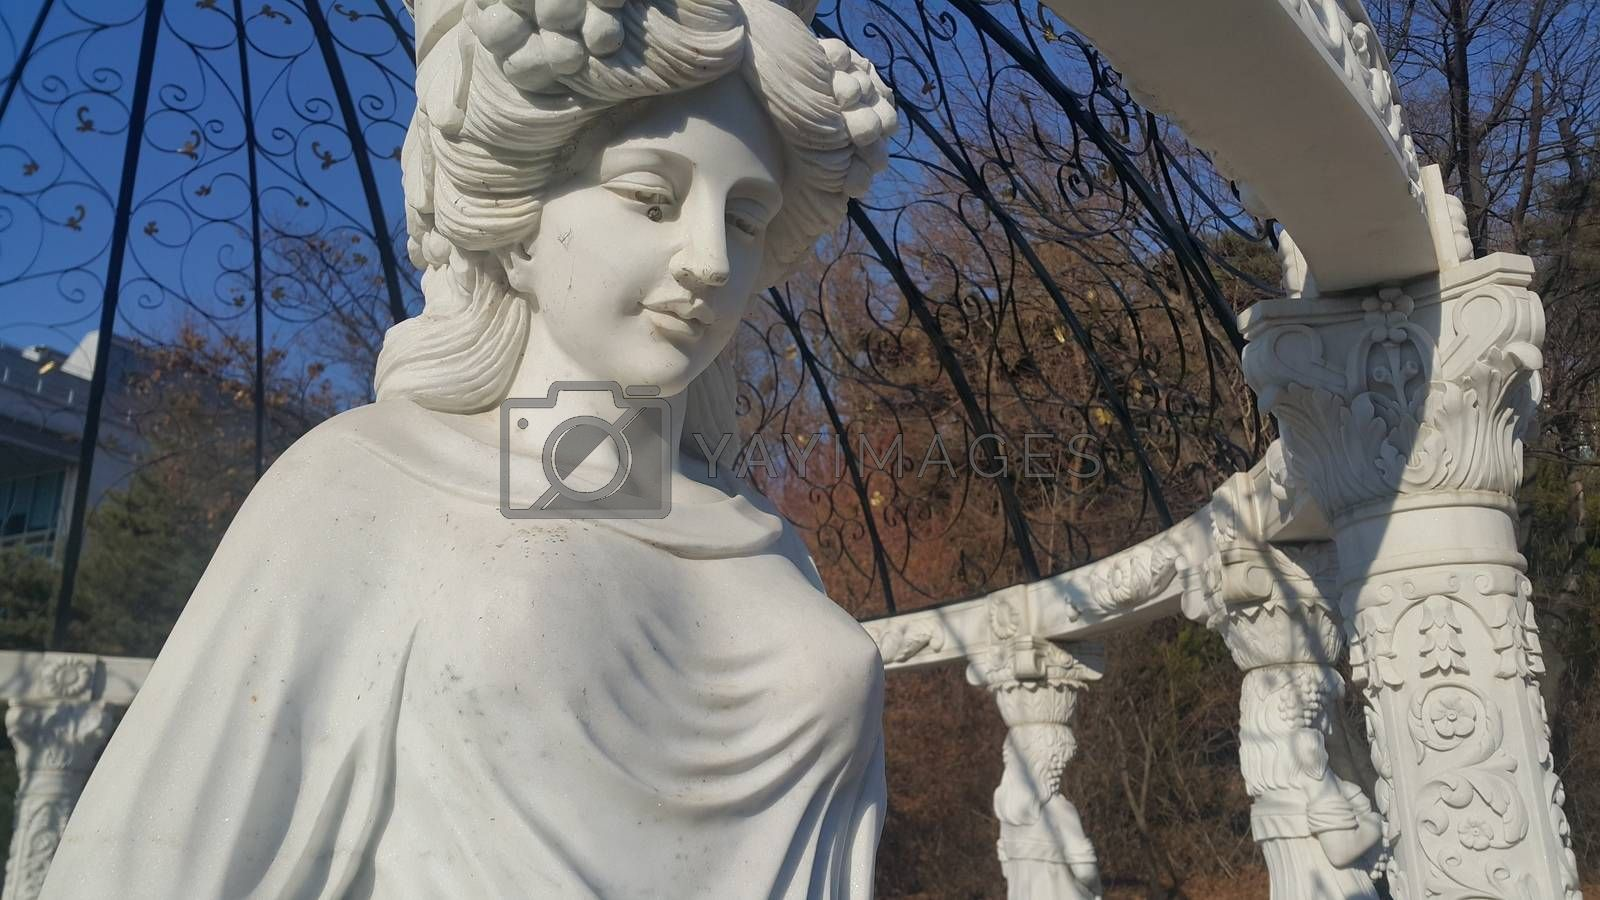 Royalty free image of Statue of Greek Goddess Head with lovely hair settled in a public park by Photochowk